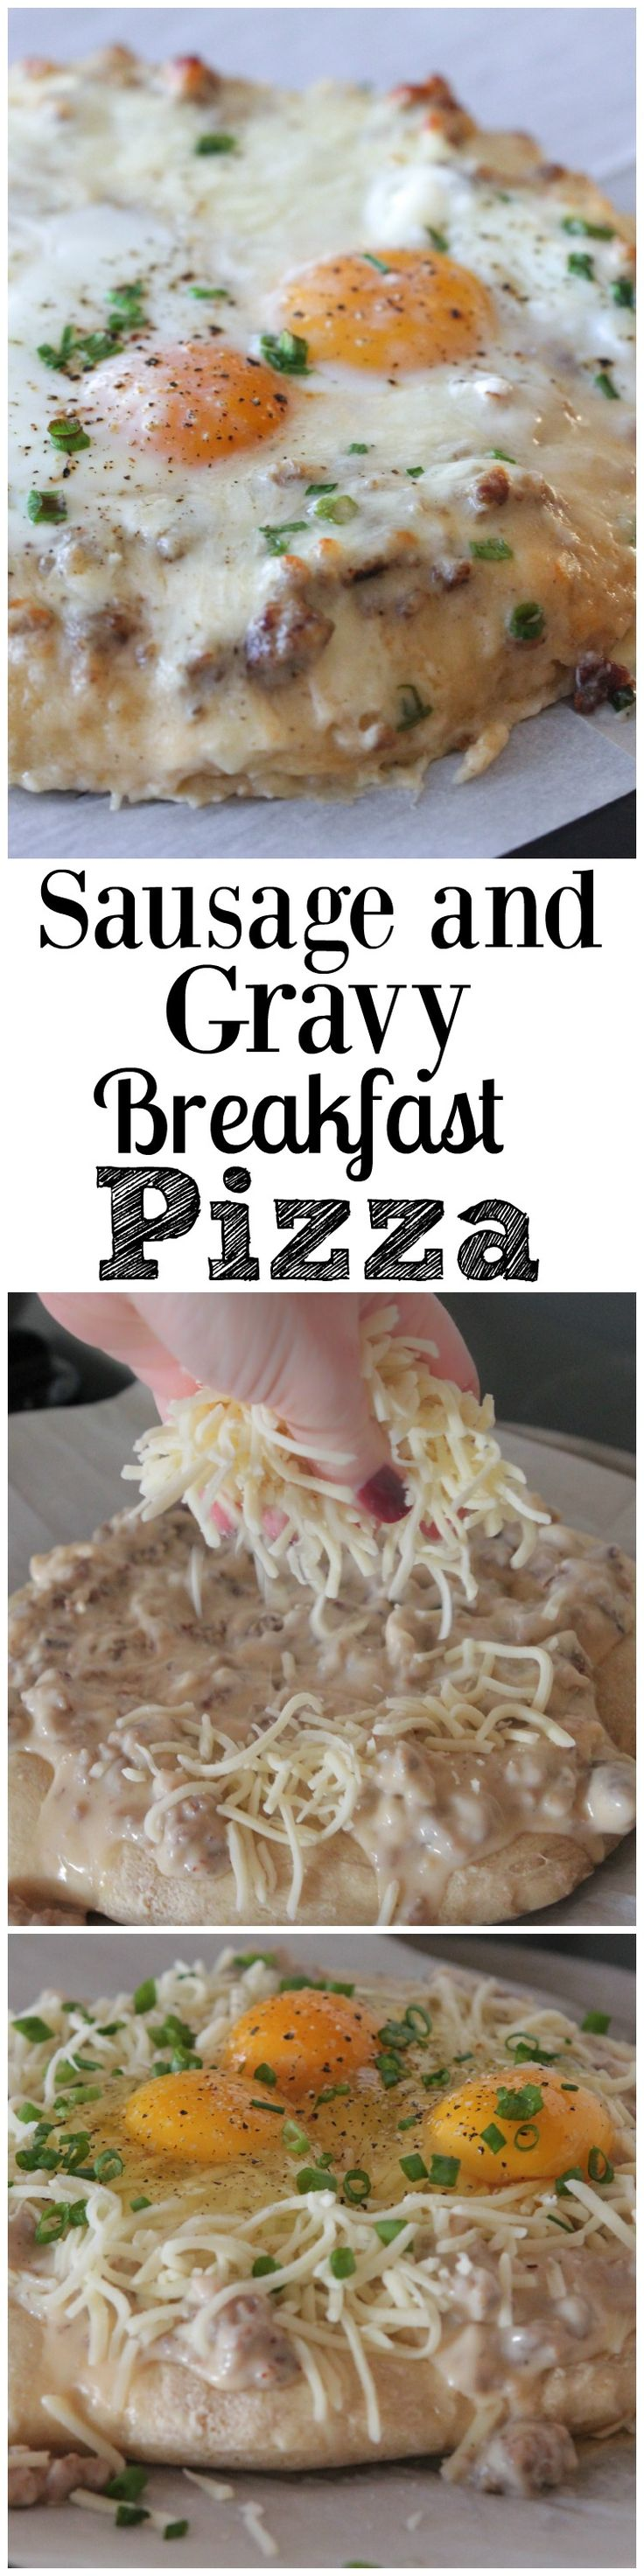 about Breakfast Pizza on Pinterest | Breakfast pizza healthy, Pizza ...